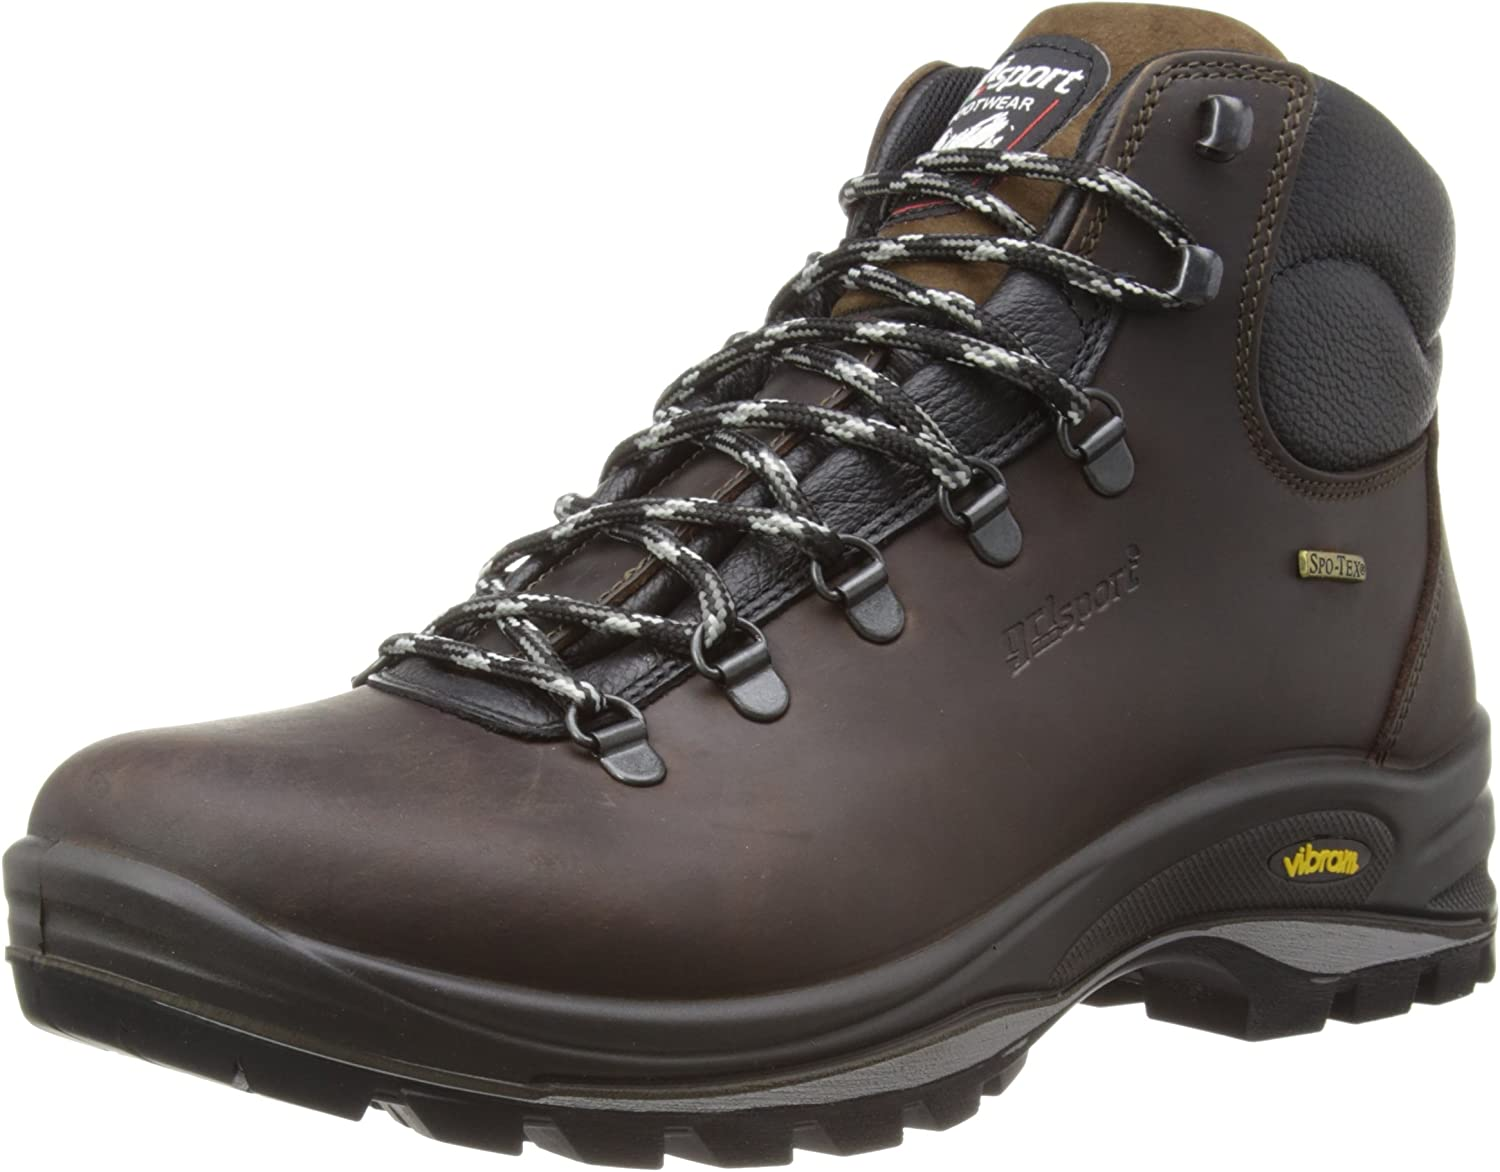 greyport Unisex-Adult Fuse Trekking and Hiking Boots